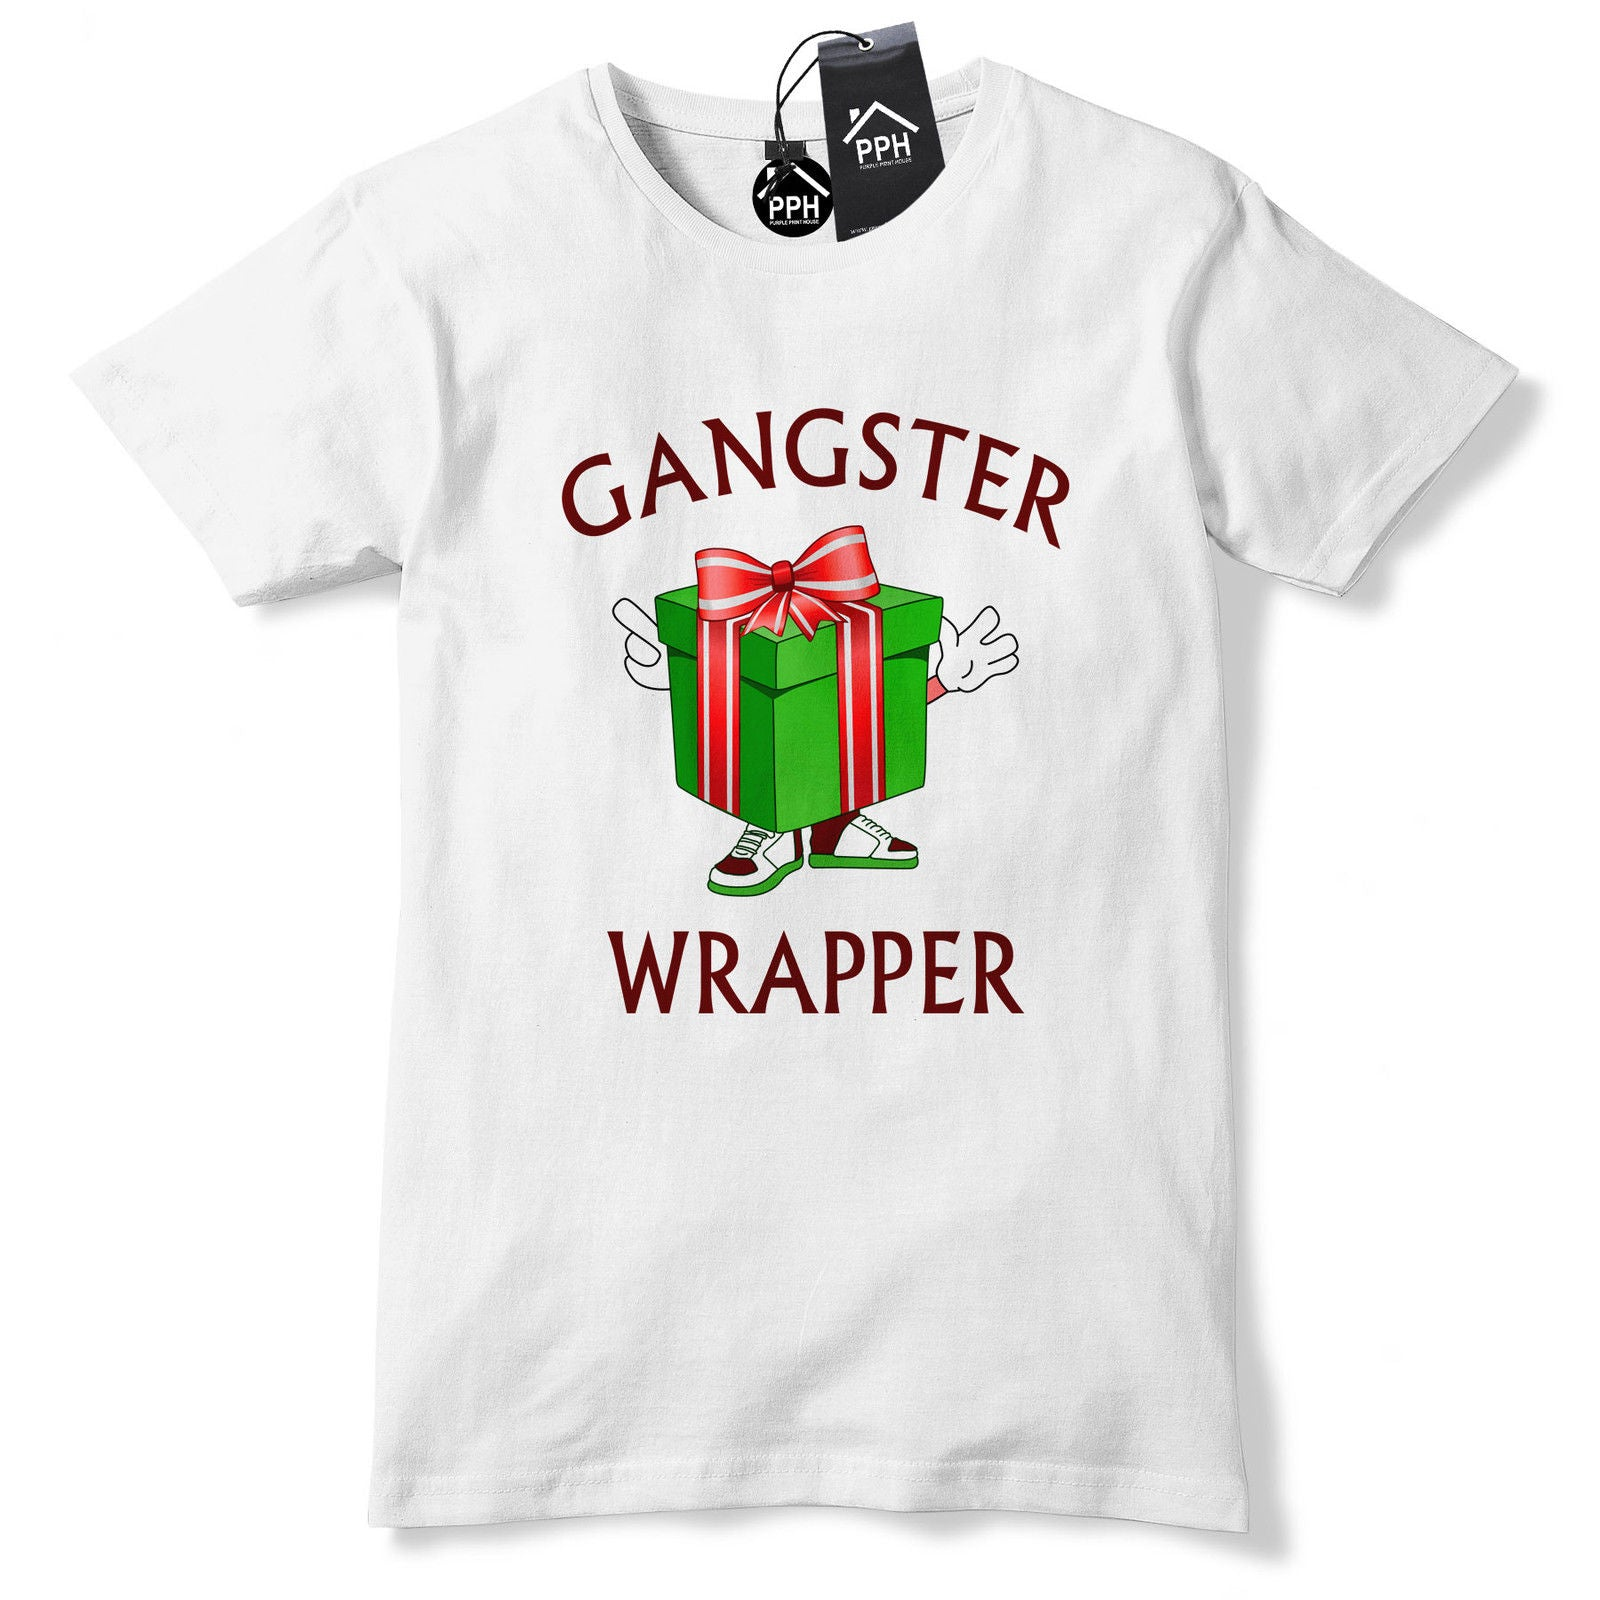 Christmas Rap Music.Gangster Wrapper Funny Christmas Present Tshirt Rap Music Dope Festive Tee Ch36 The Clothing Shed